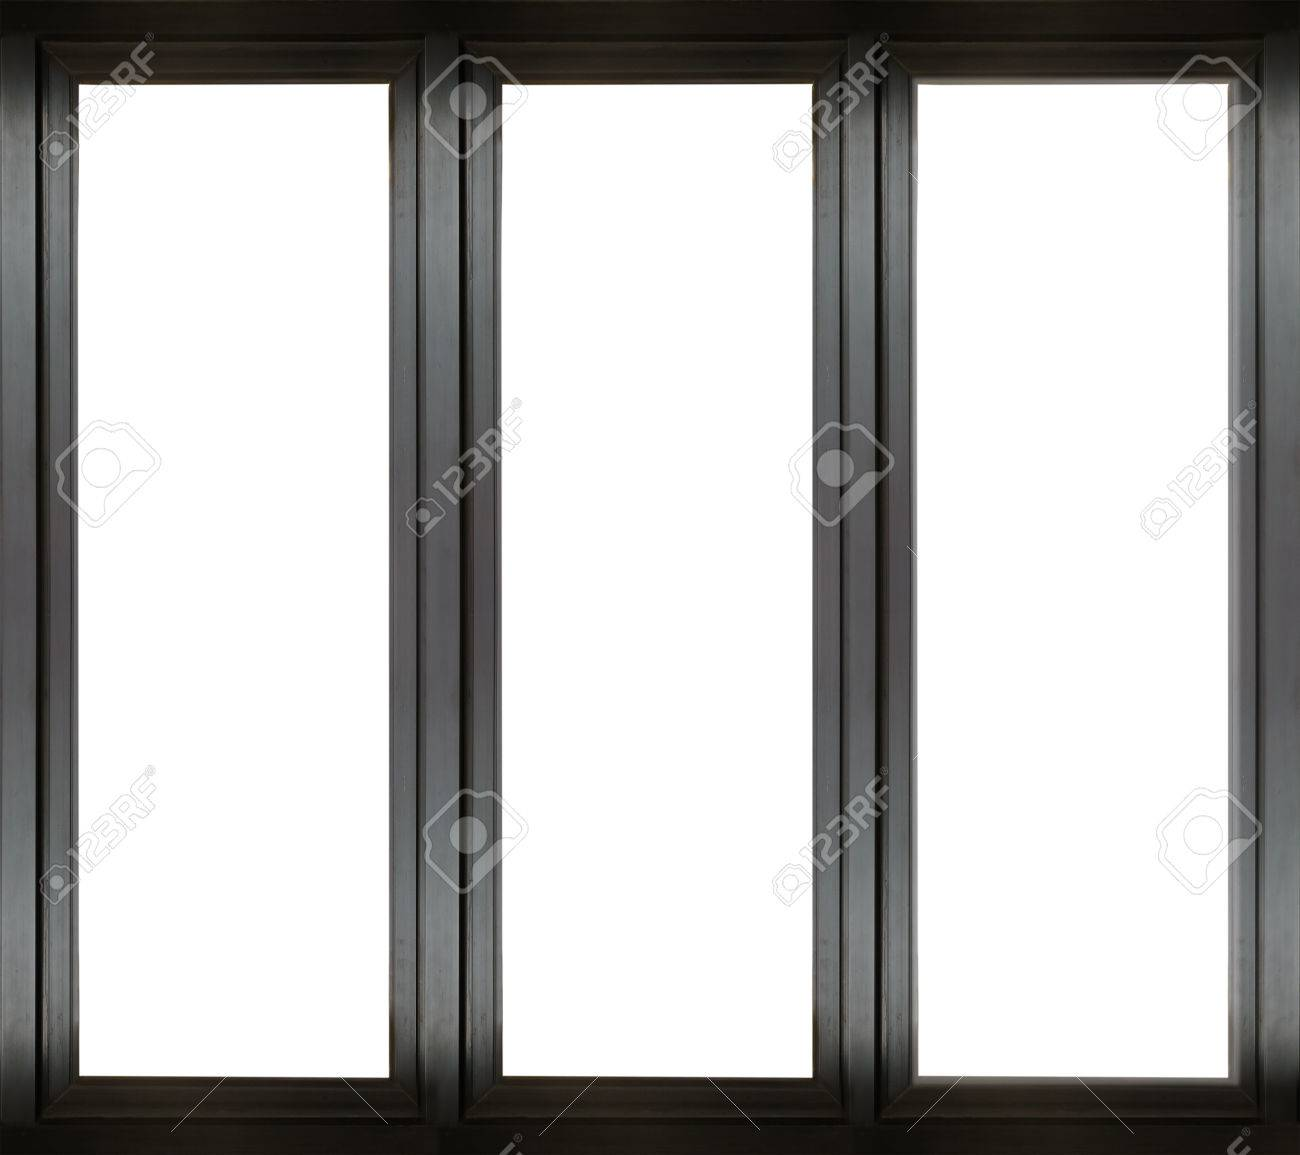 White window frame - Black Metal Window Frame Stock Photo 31922671